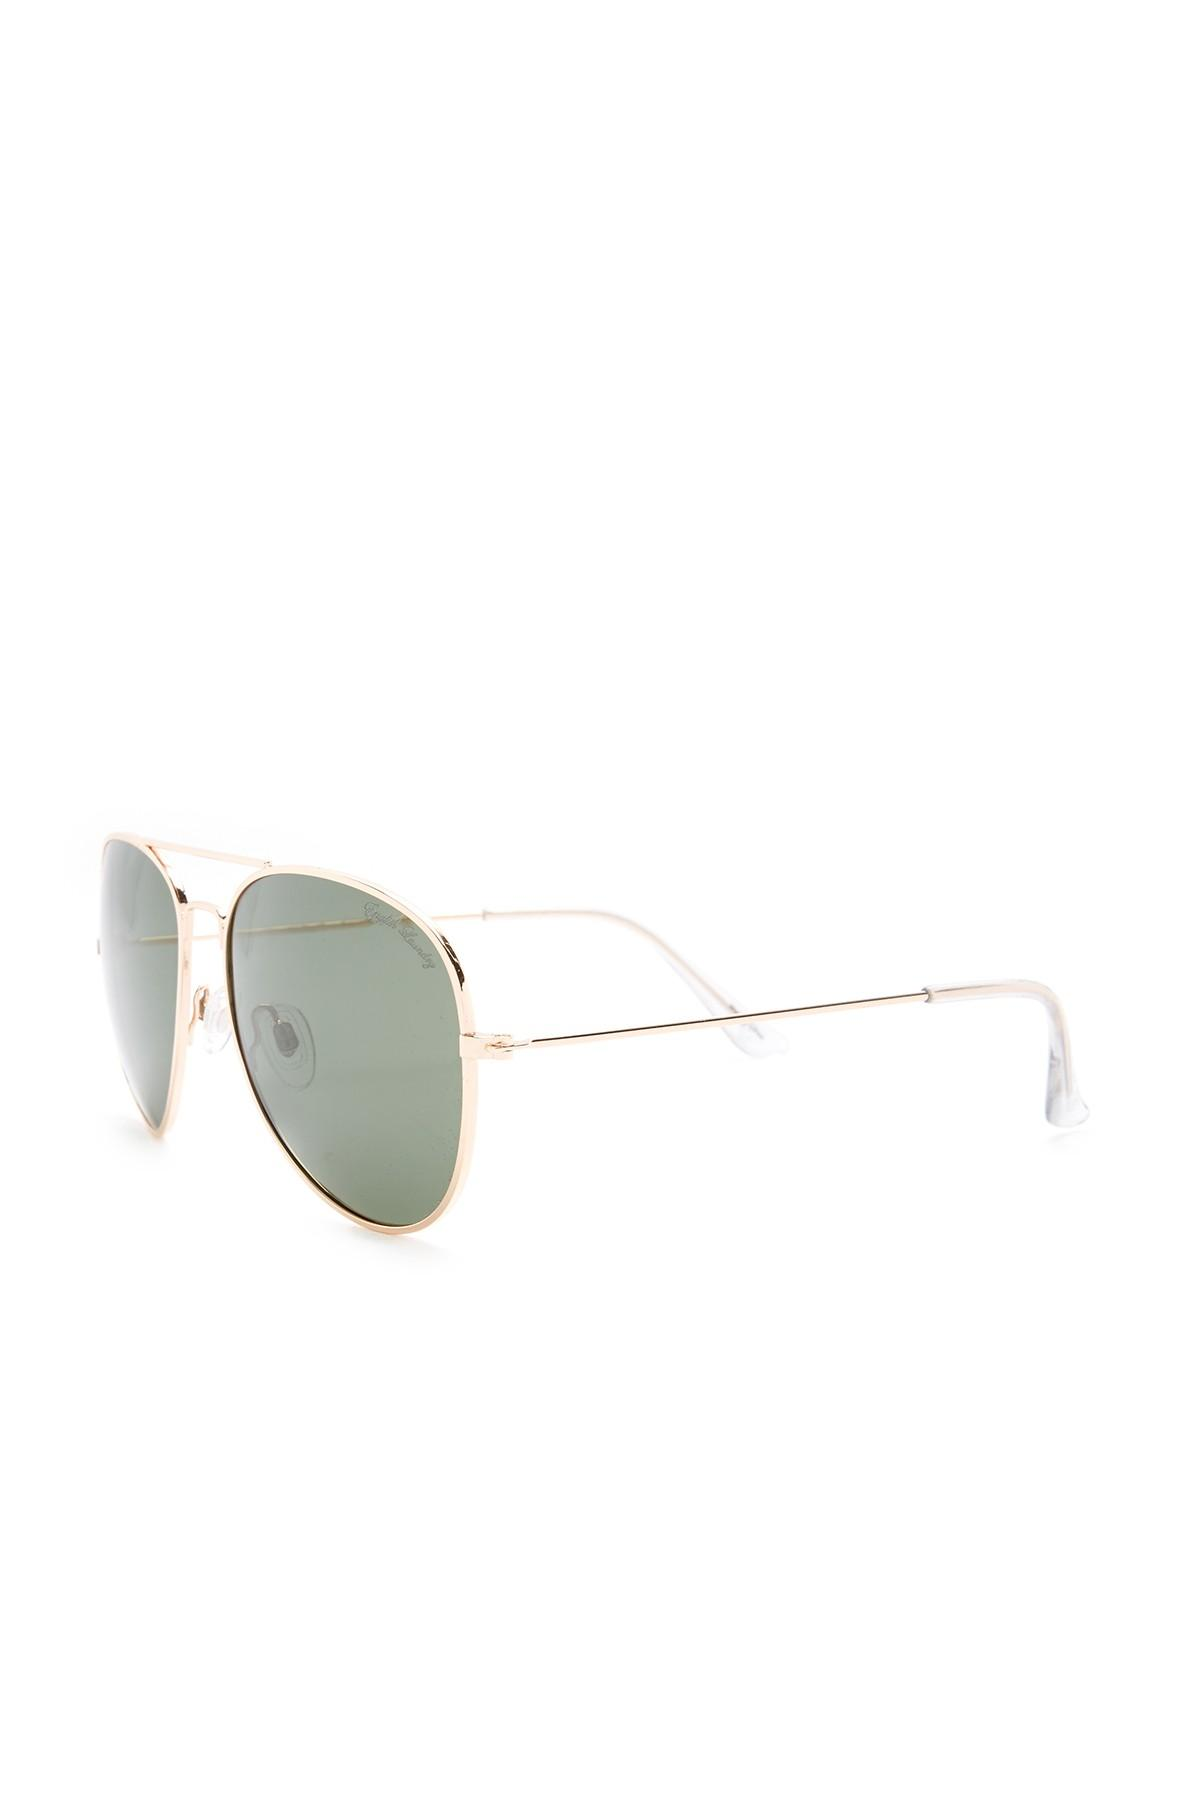 d576e16a2d6a Gallery. Previously sold at: Nordstrom Rack · Men's Rose Gold Sunglasses ...